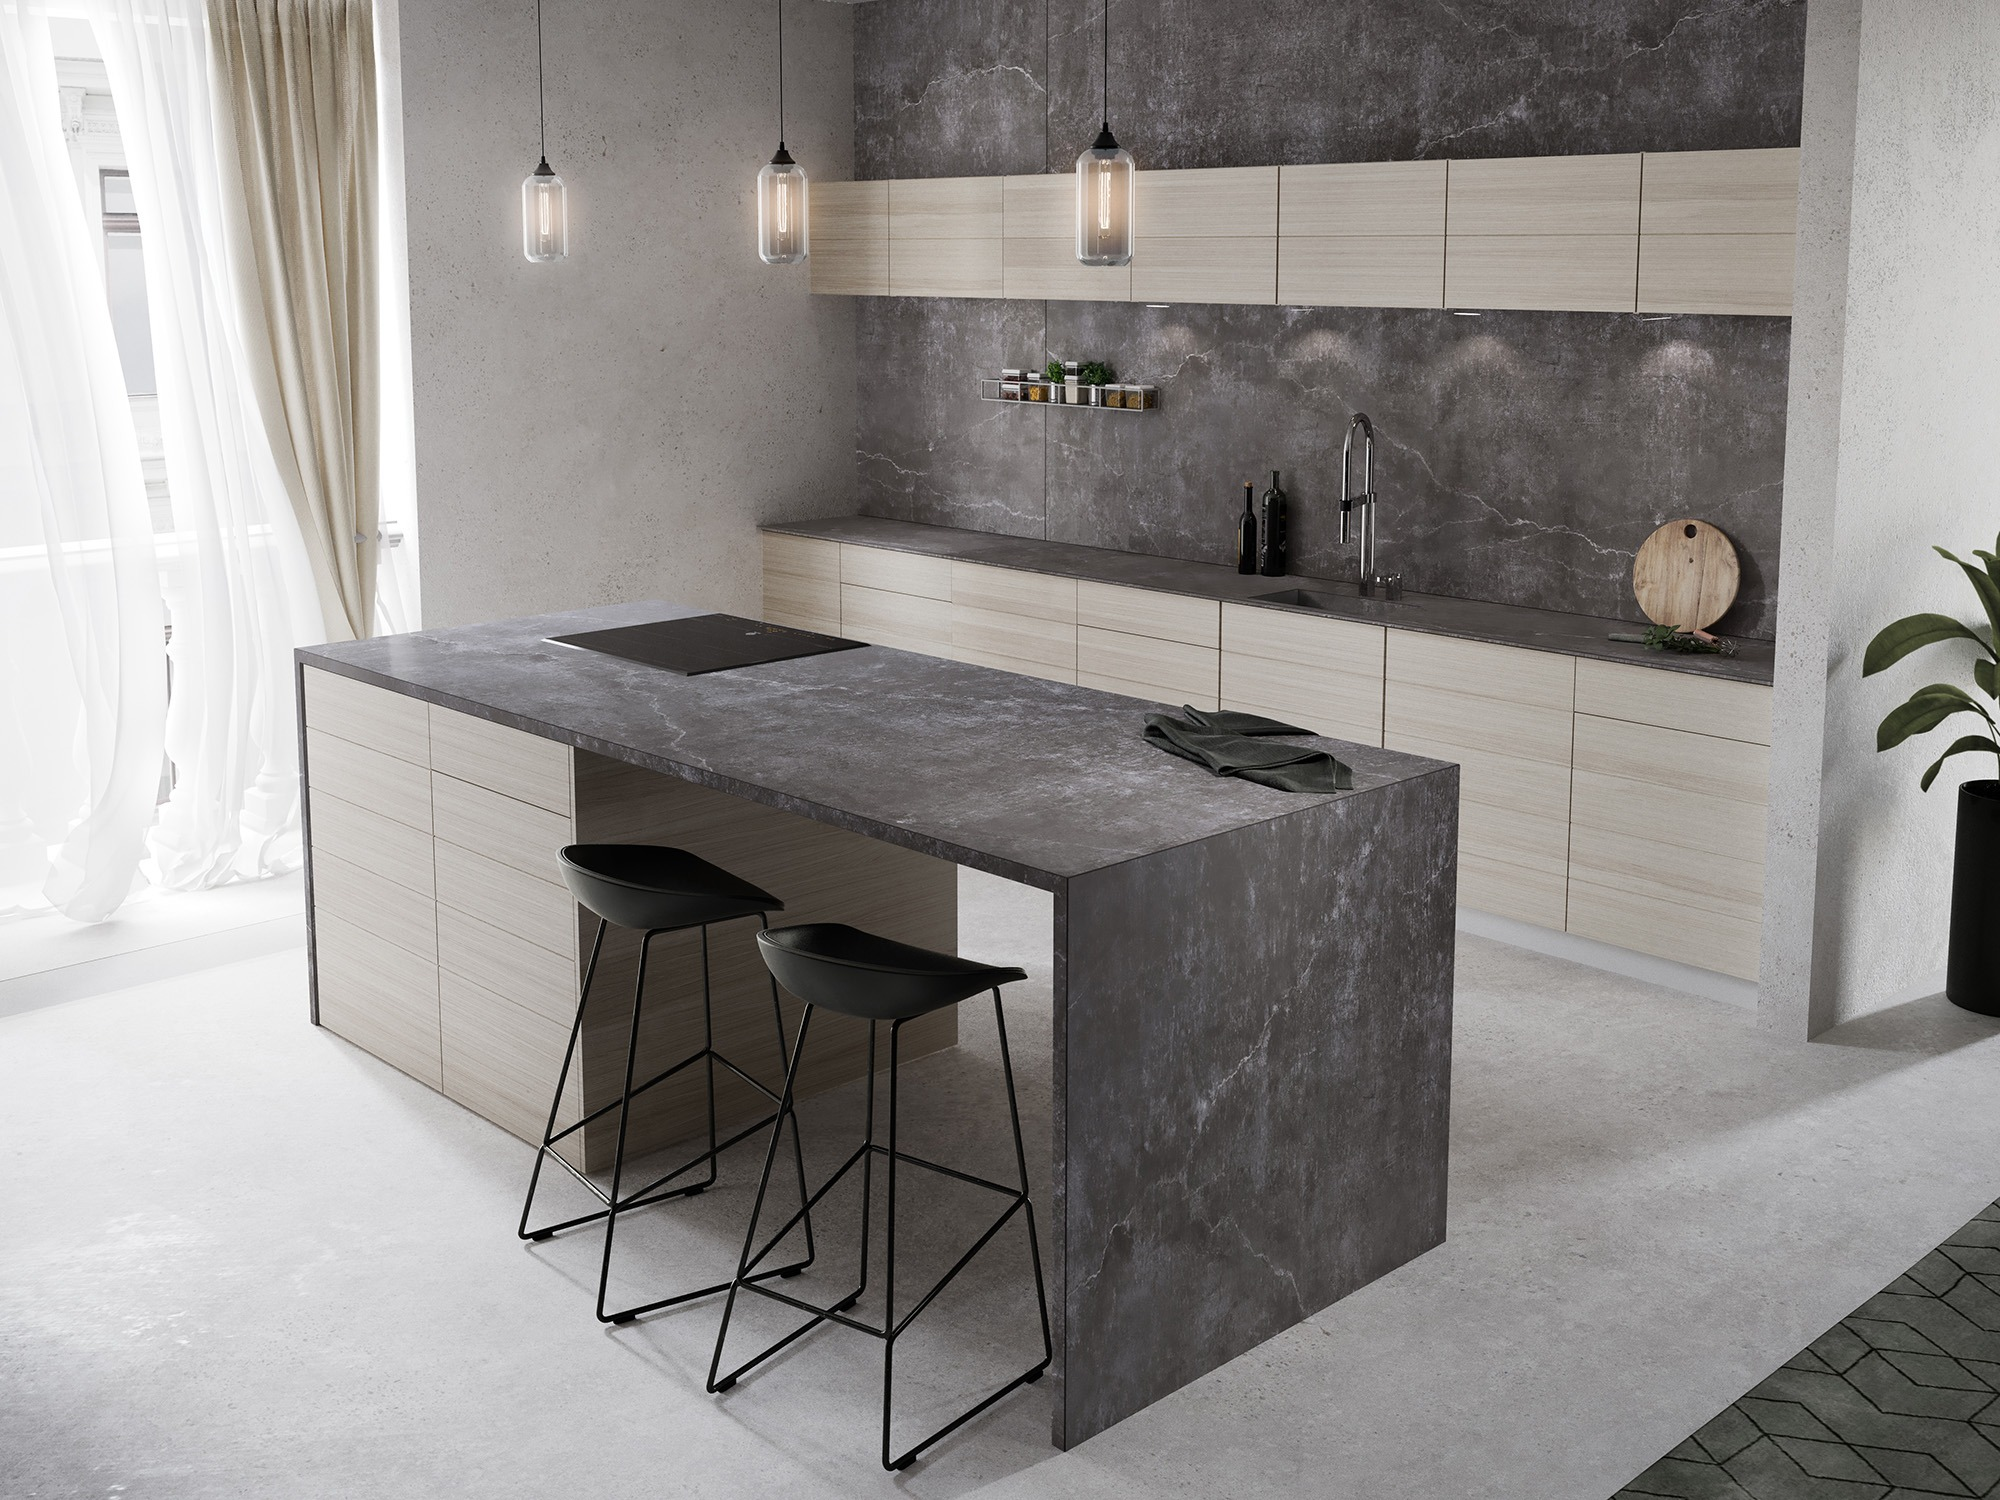 Replace Kitchen Cabinet Bathroom Cabinet City One Design